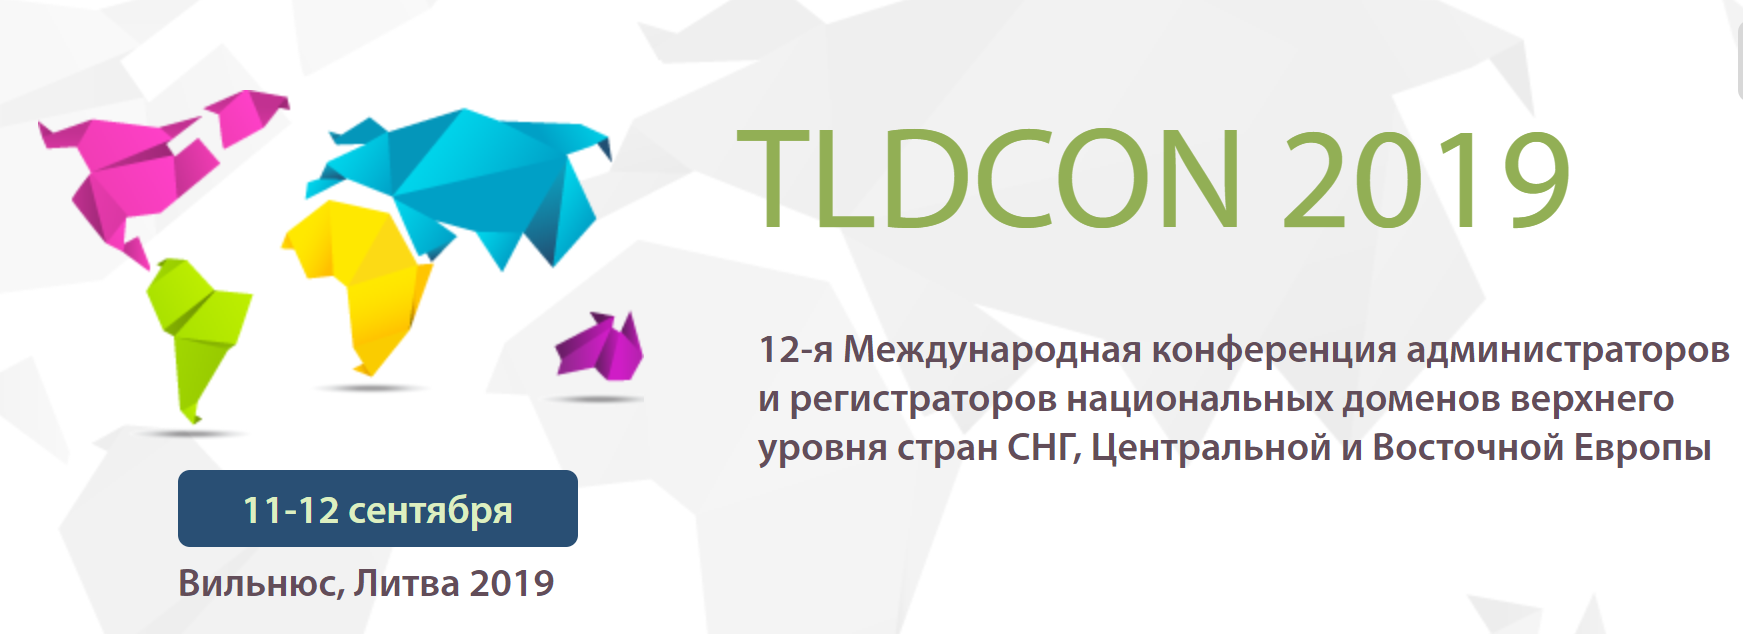 TLDCON 2019